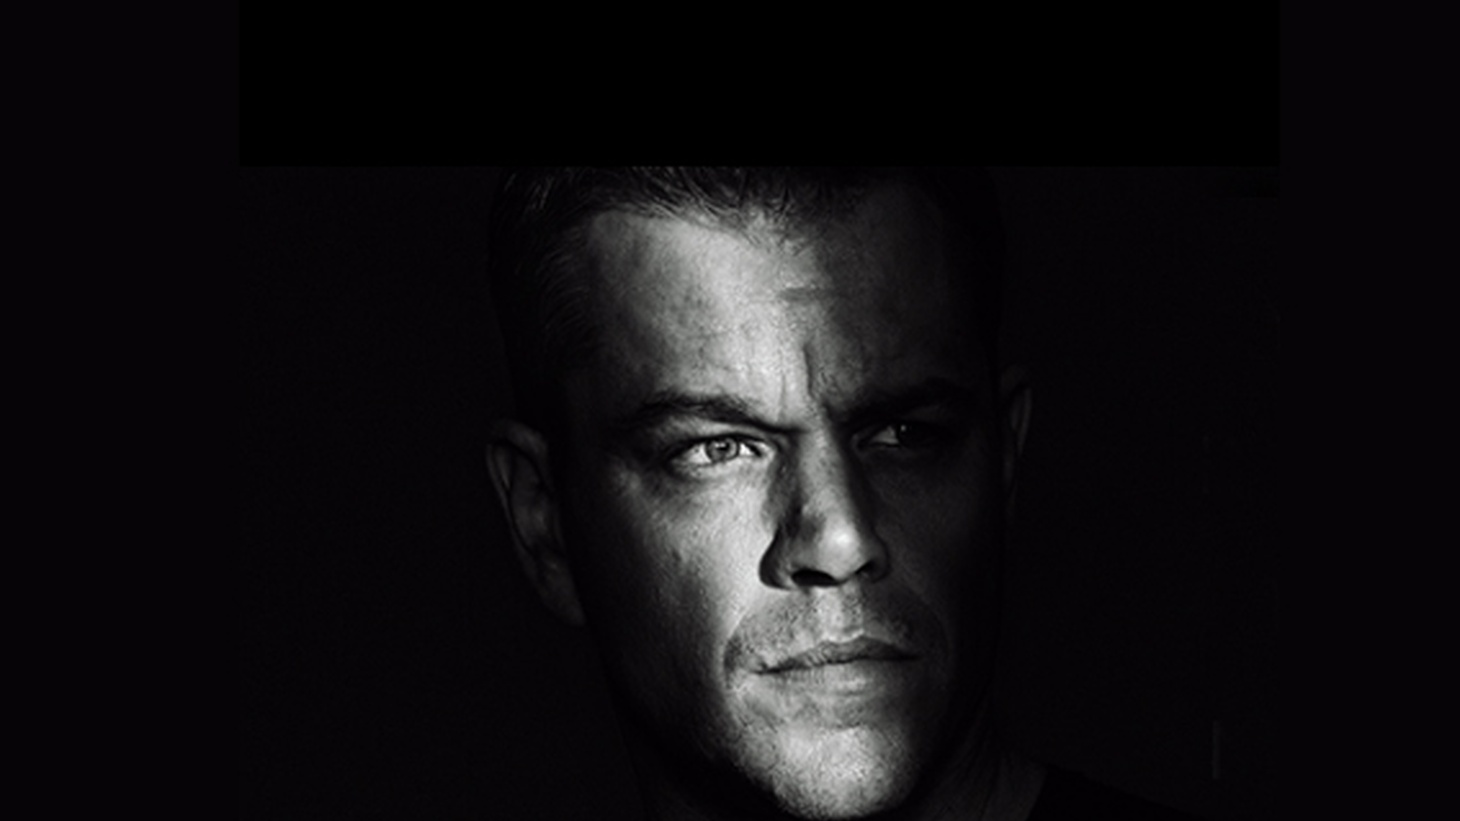 Jason Bourne used to be an amnesiac. Now he remember who he is, but this latest episode of the franchise forgot to make him human.